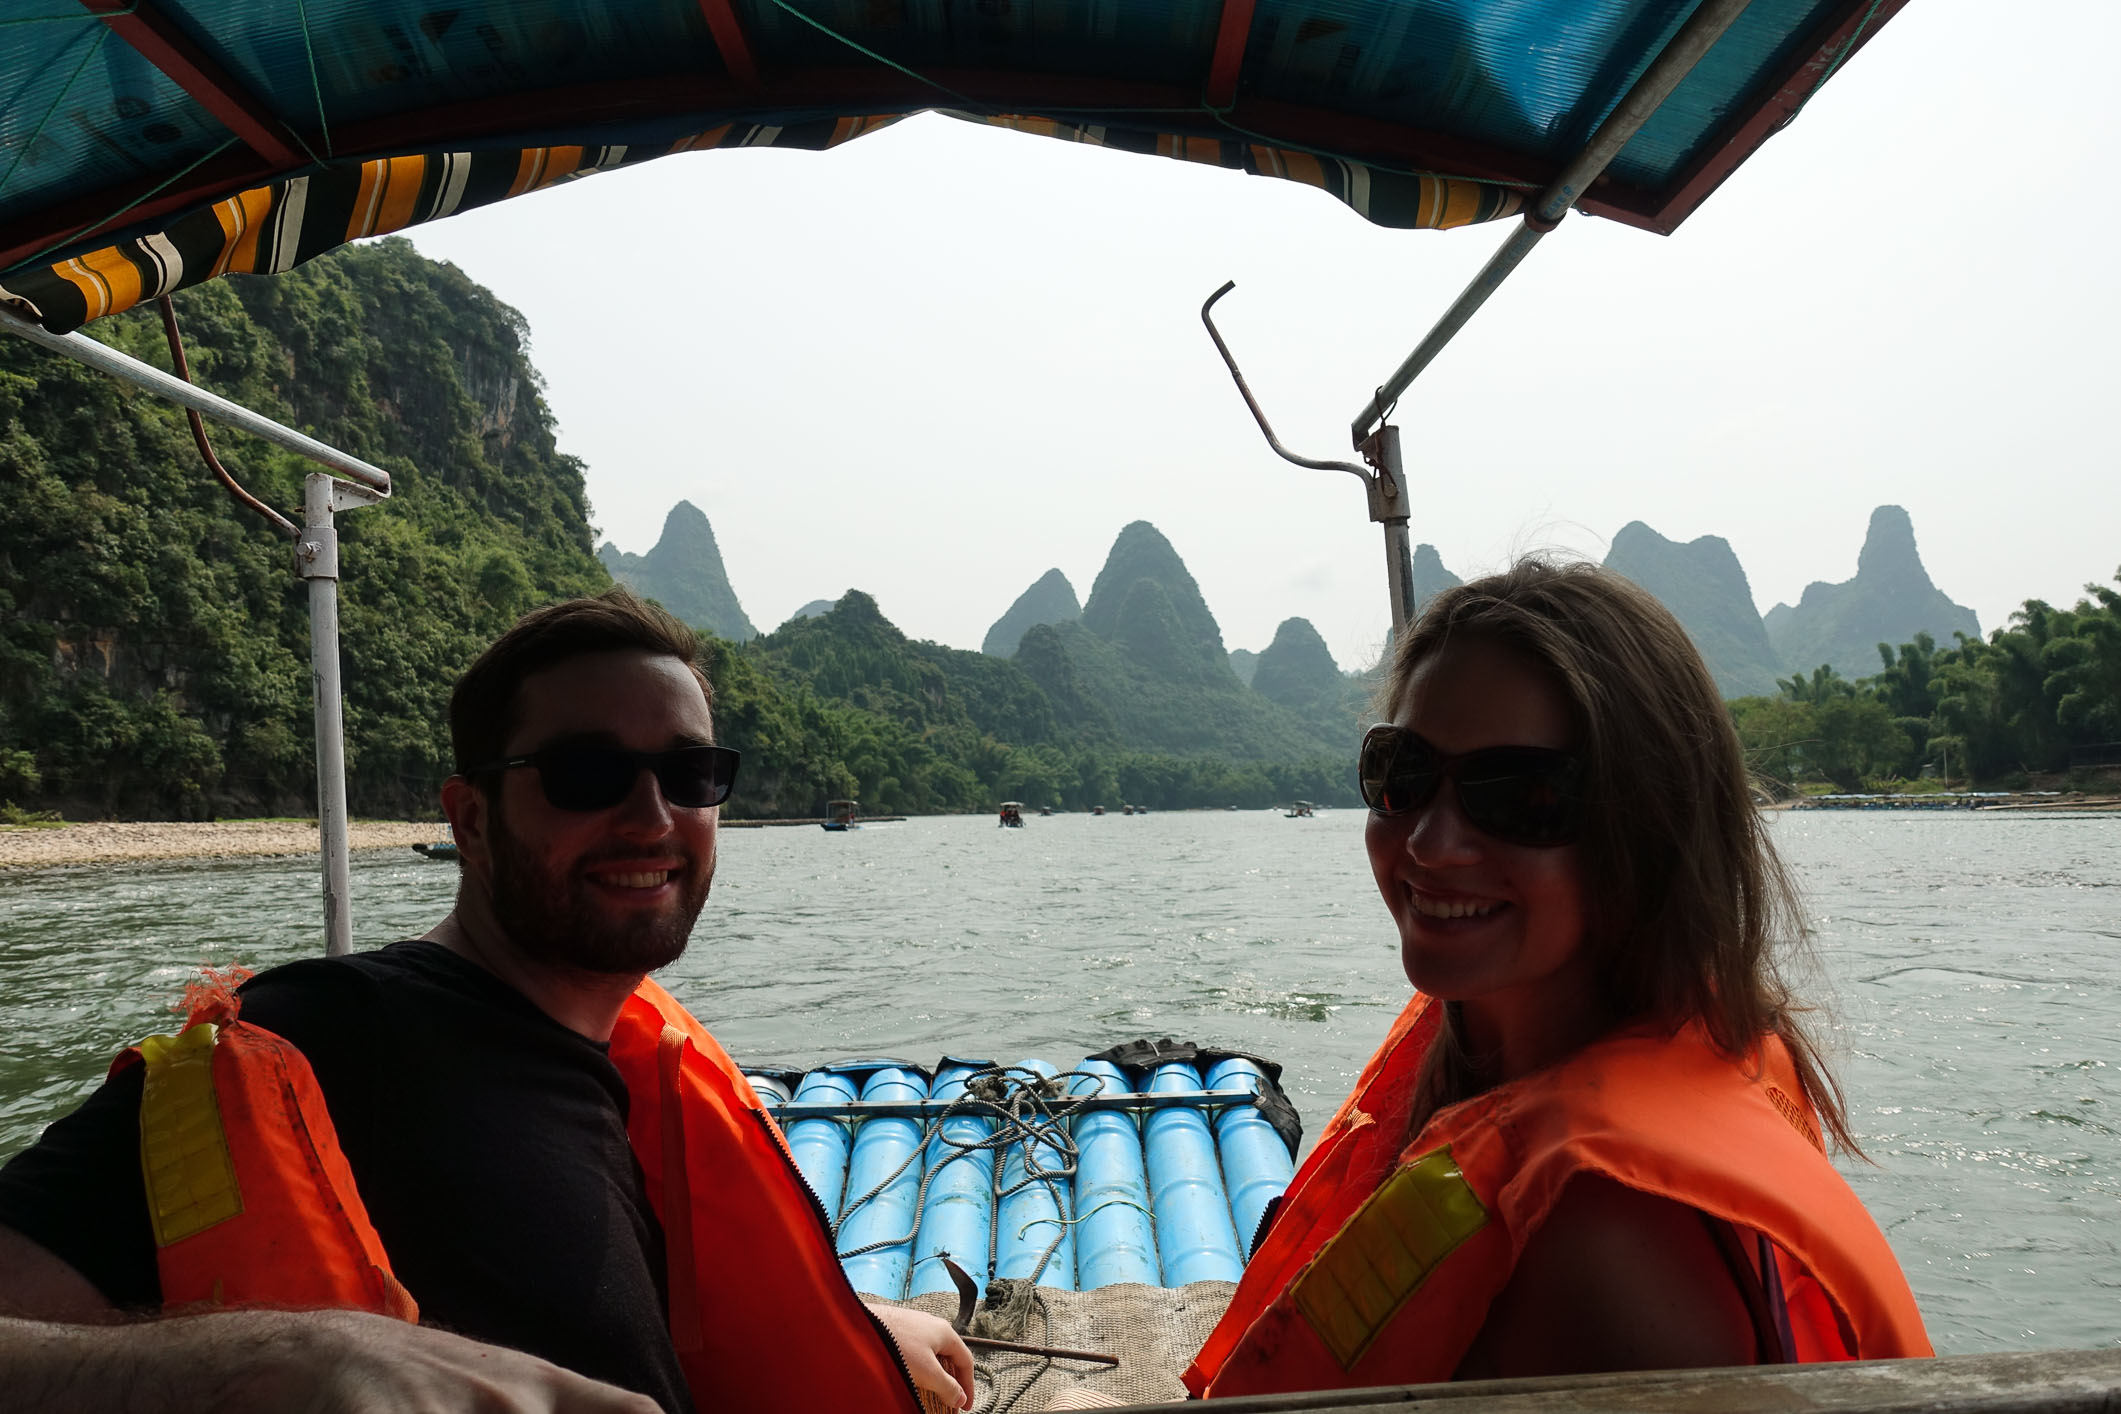 Akos and Petra on the Li river